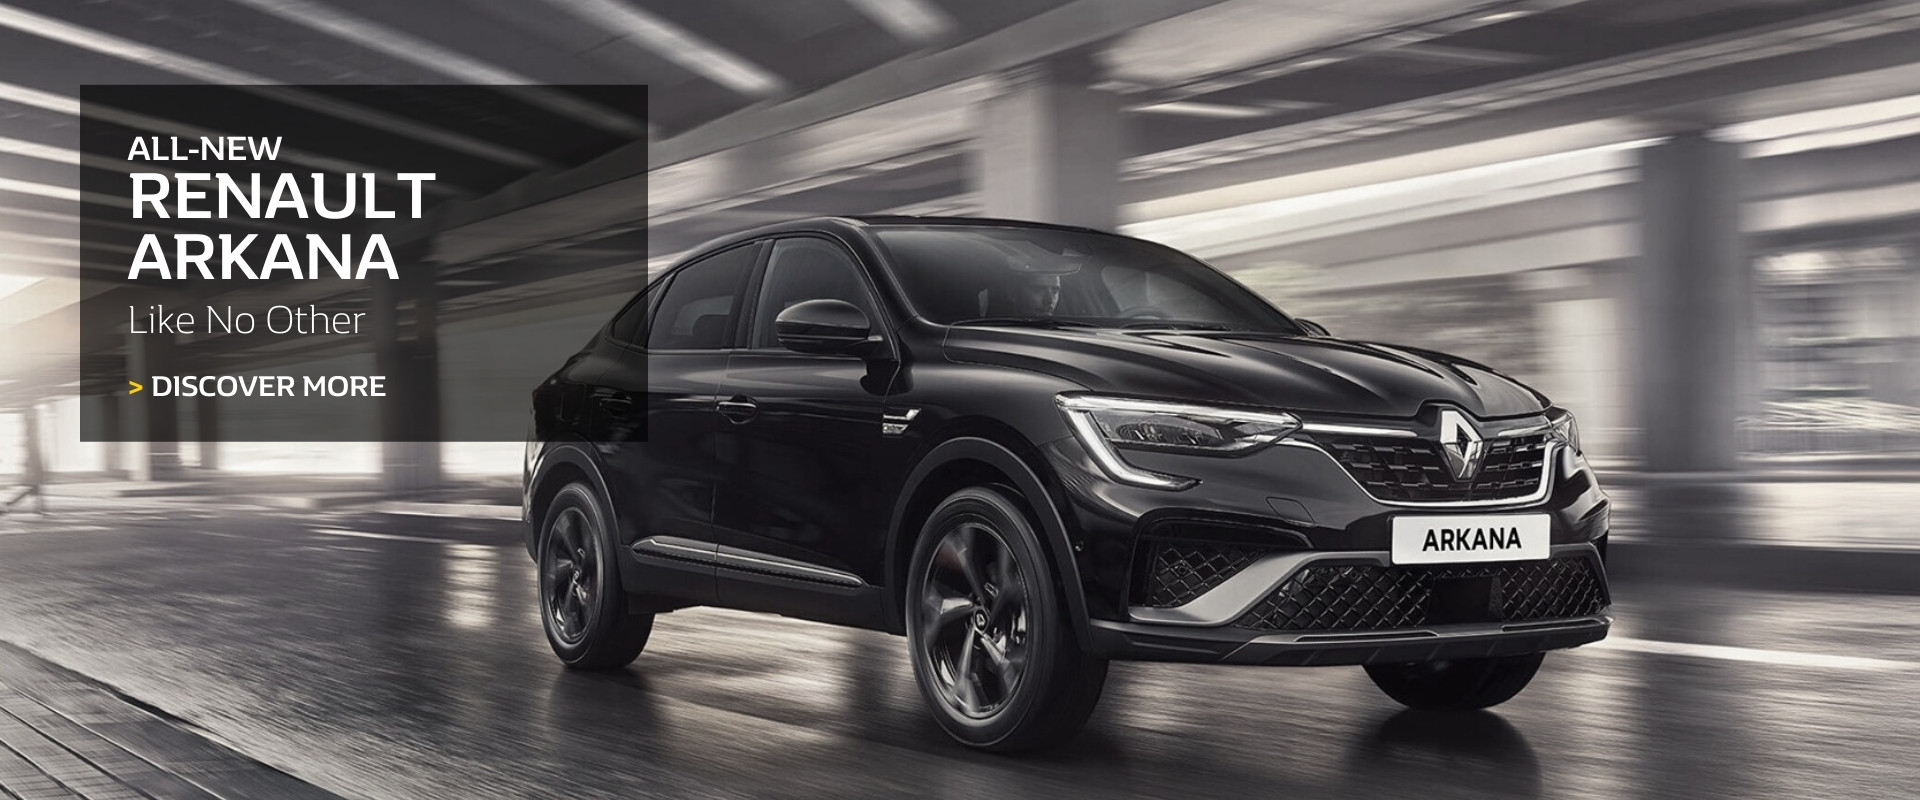 All-new Renault Arkana. Like no other.